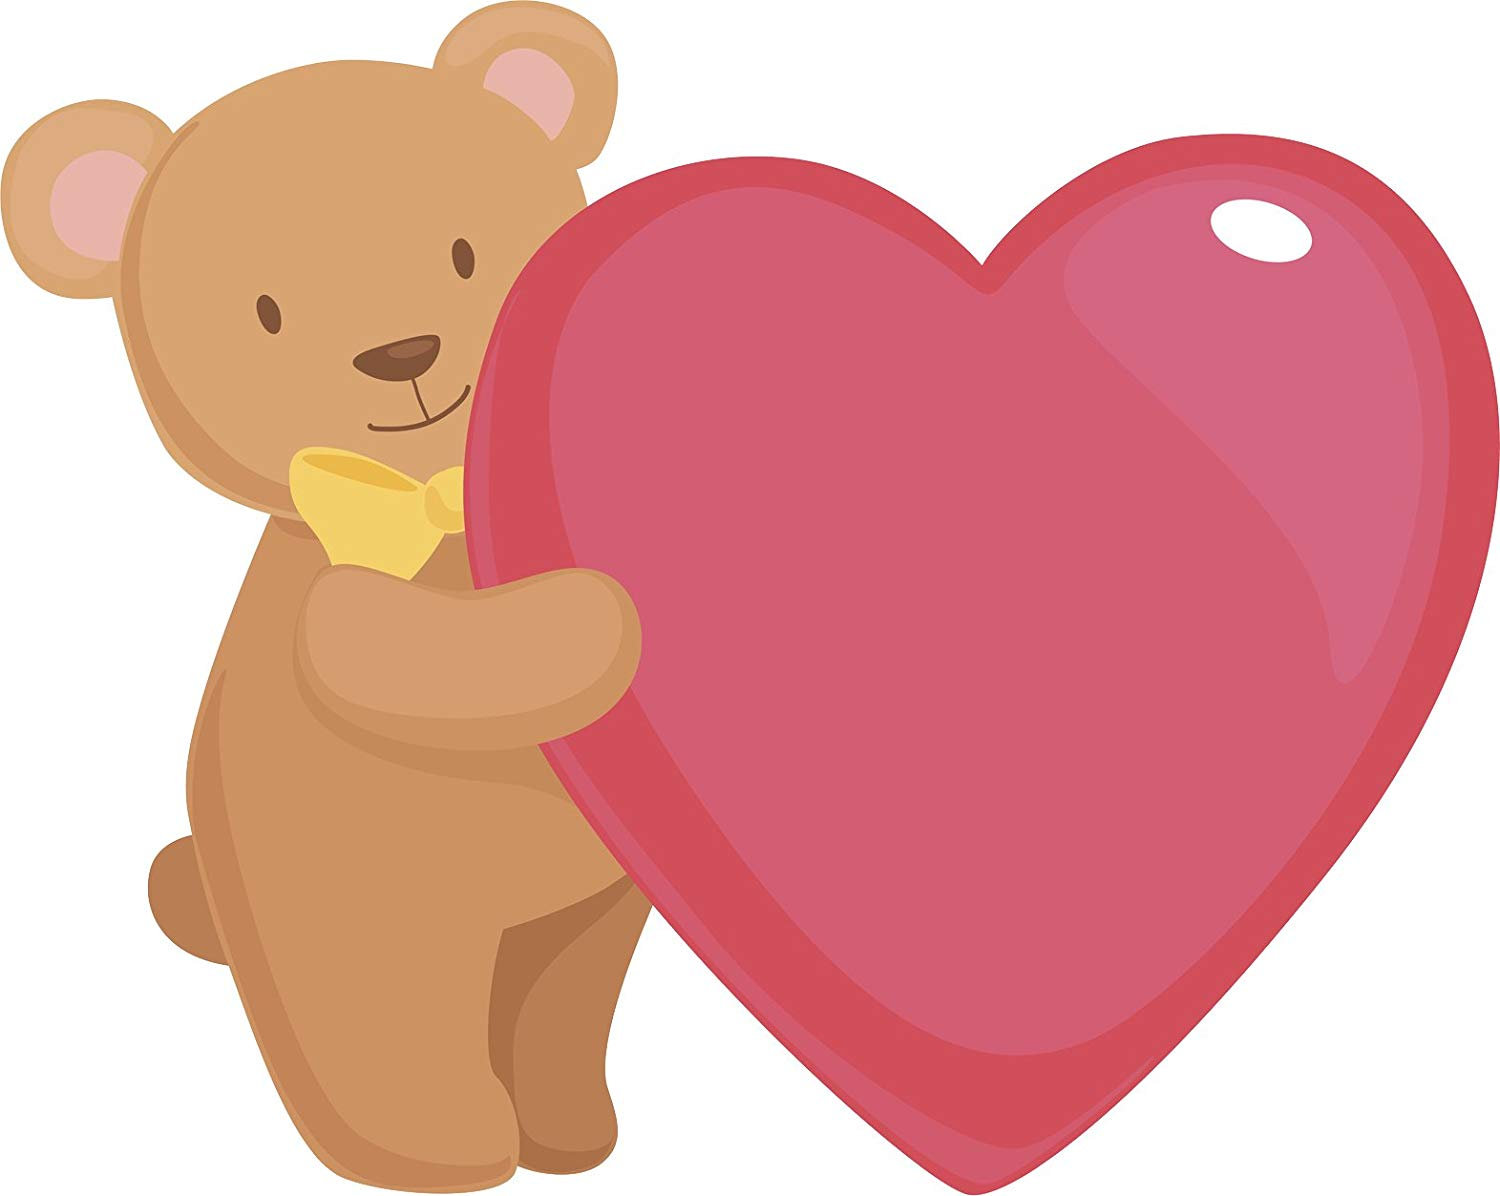 Amazon.com: Cute Adorable Teddy Bear Hugging A Heart Cartoon.